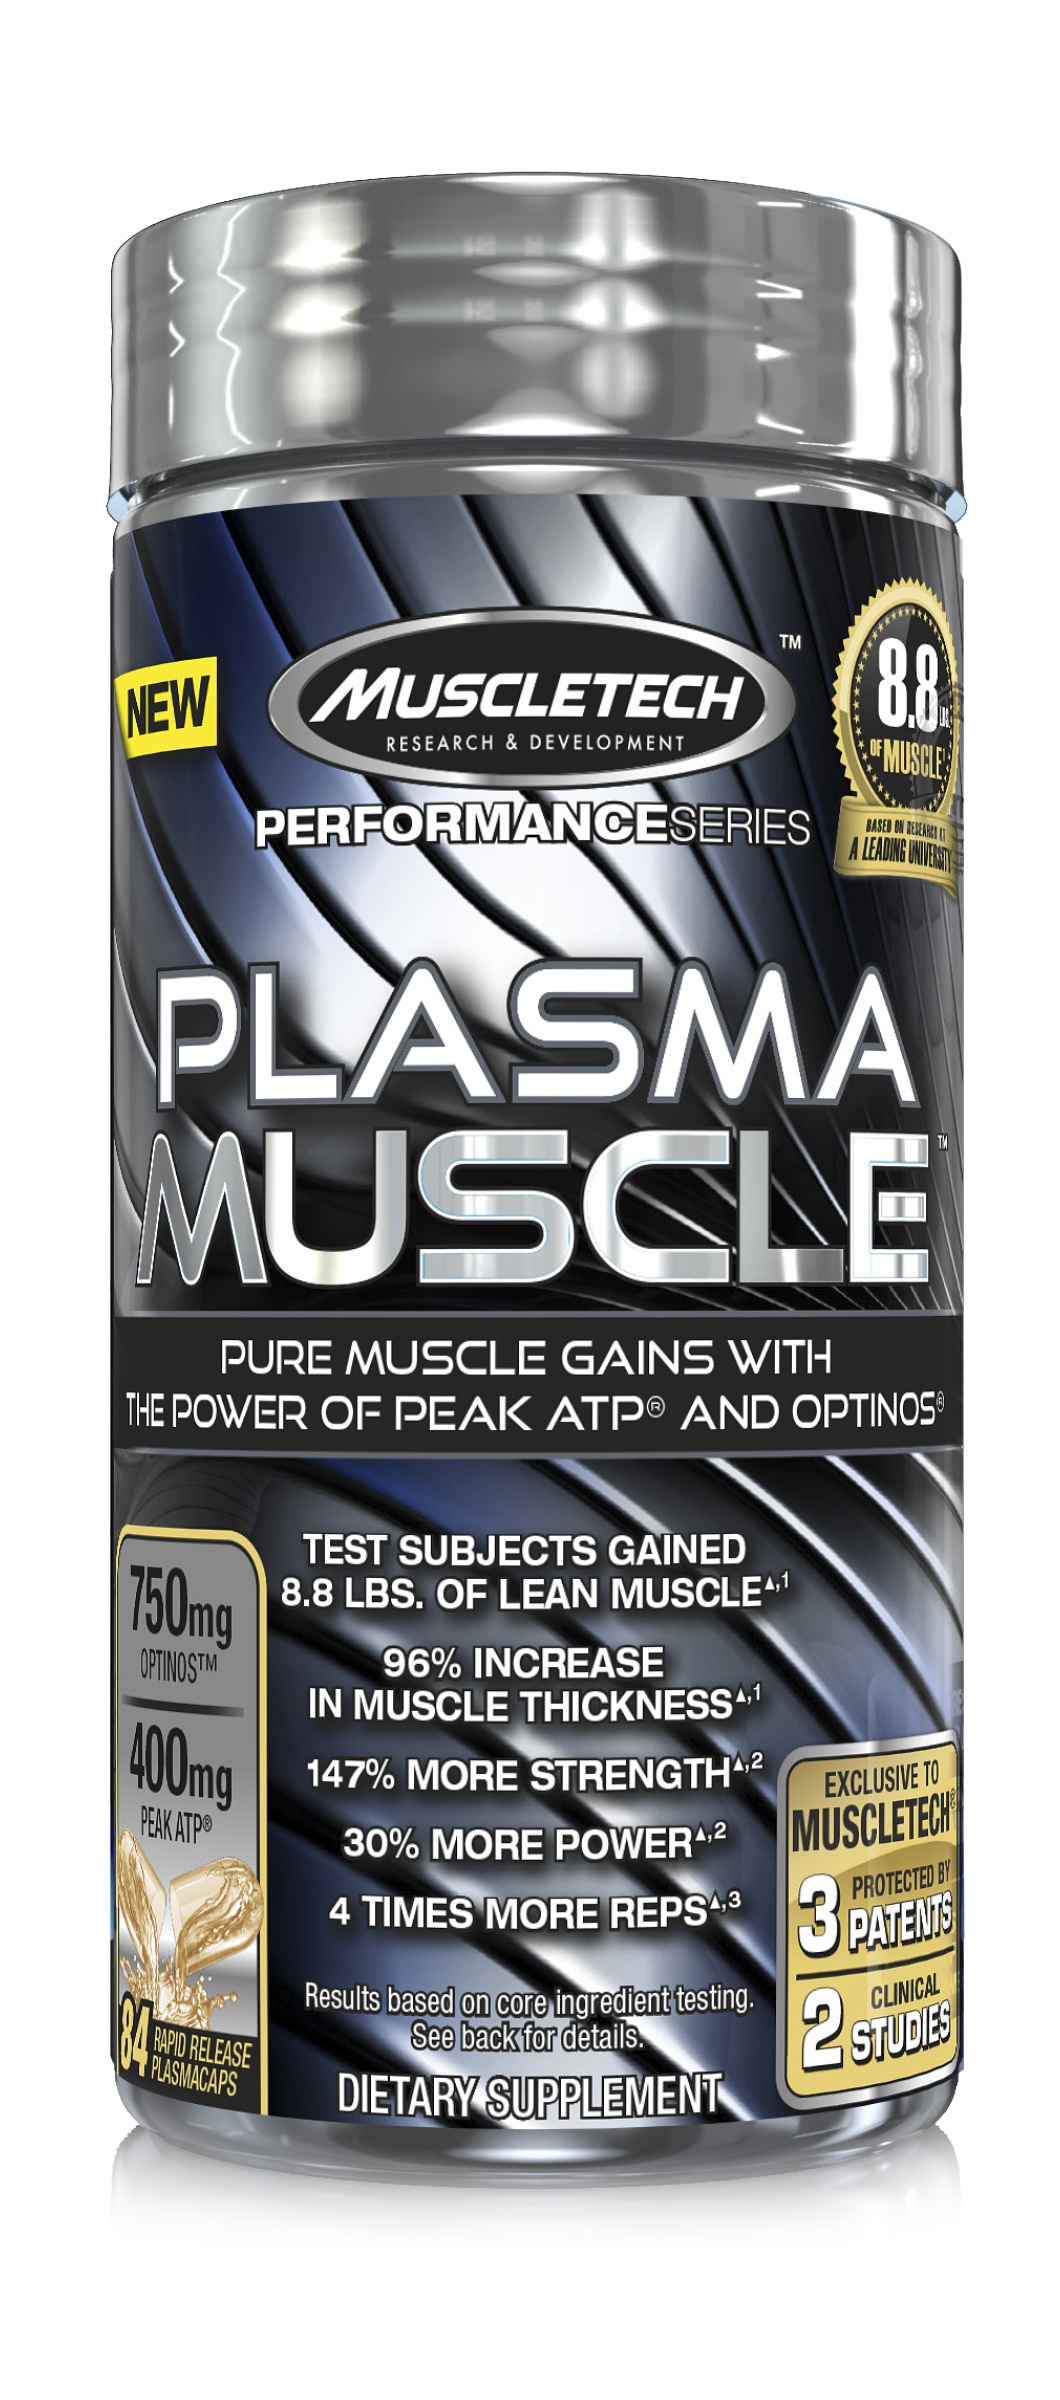 Plasma Muscle: Part 3 of MuscleTech's Build Muscle Trilogy